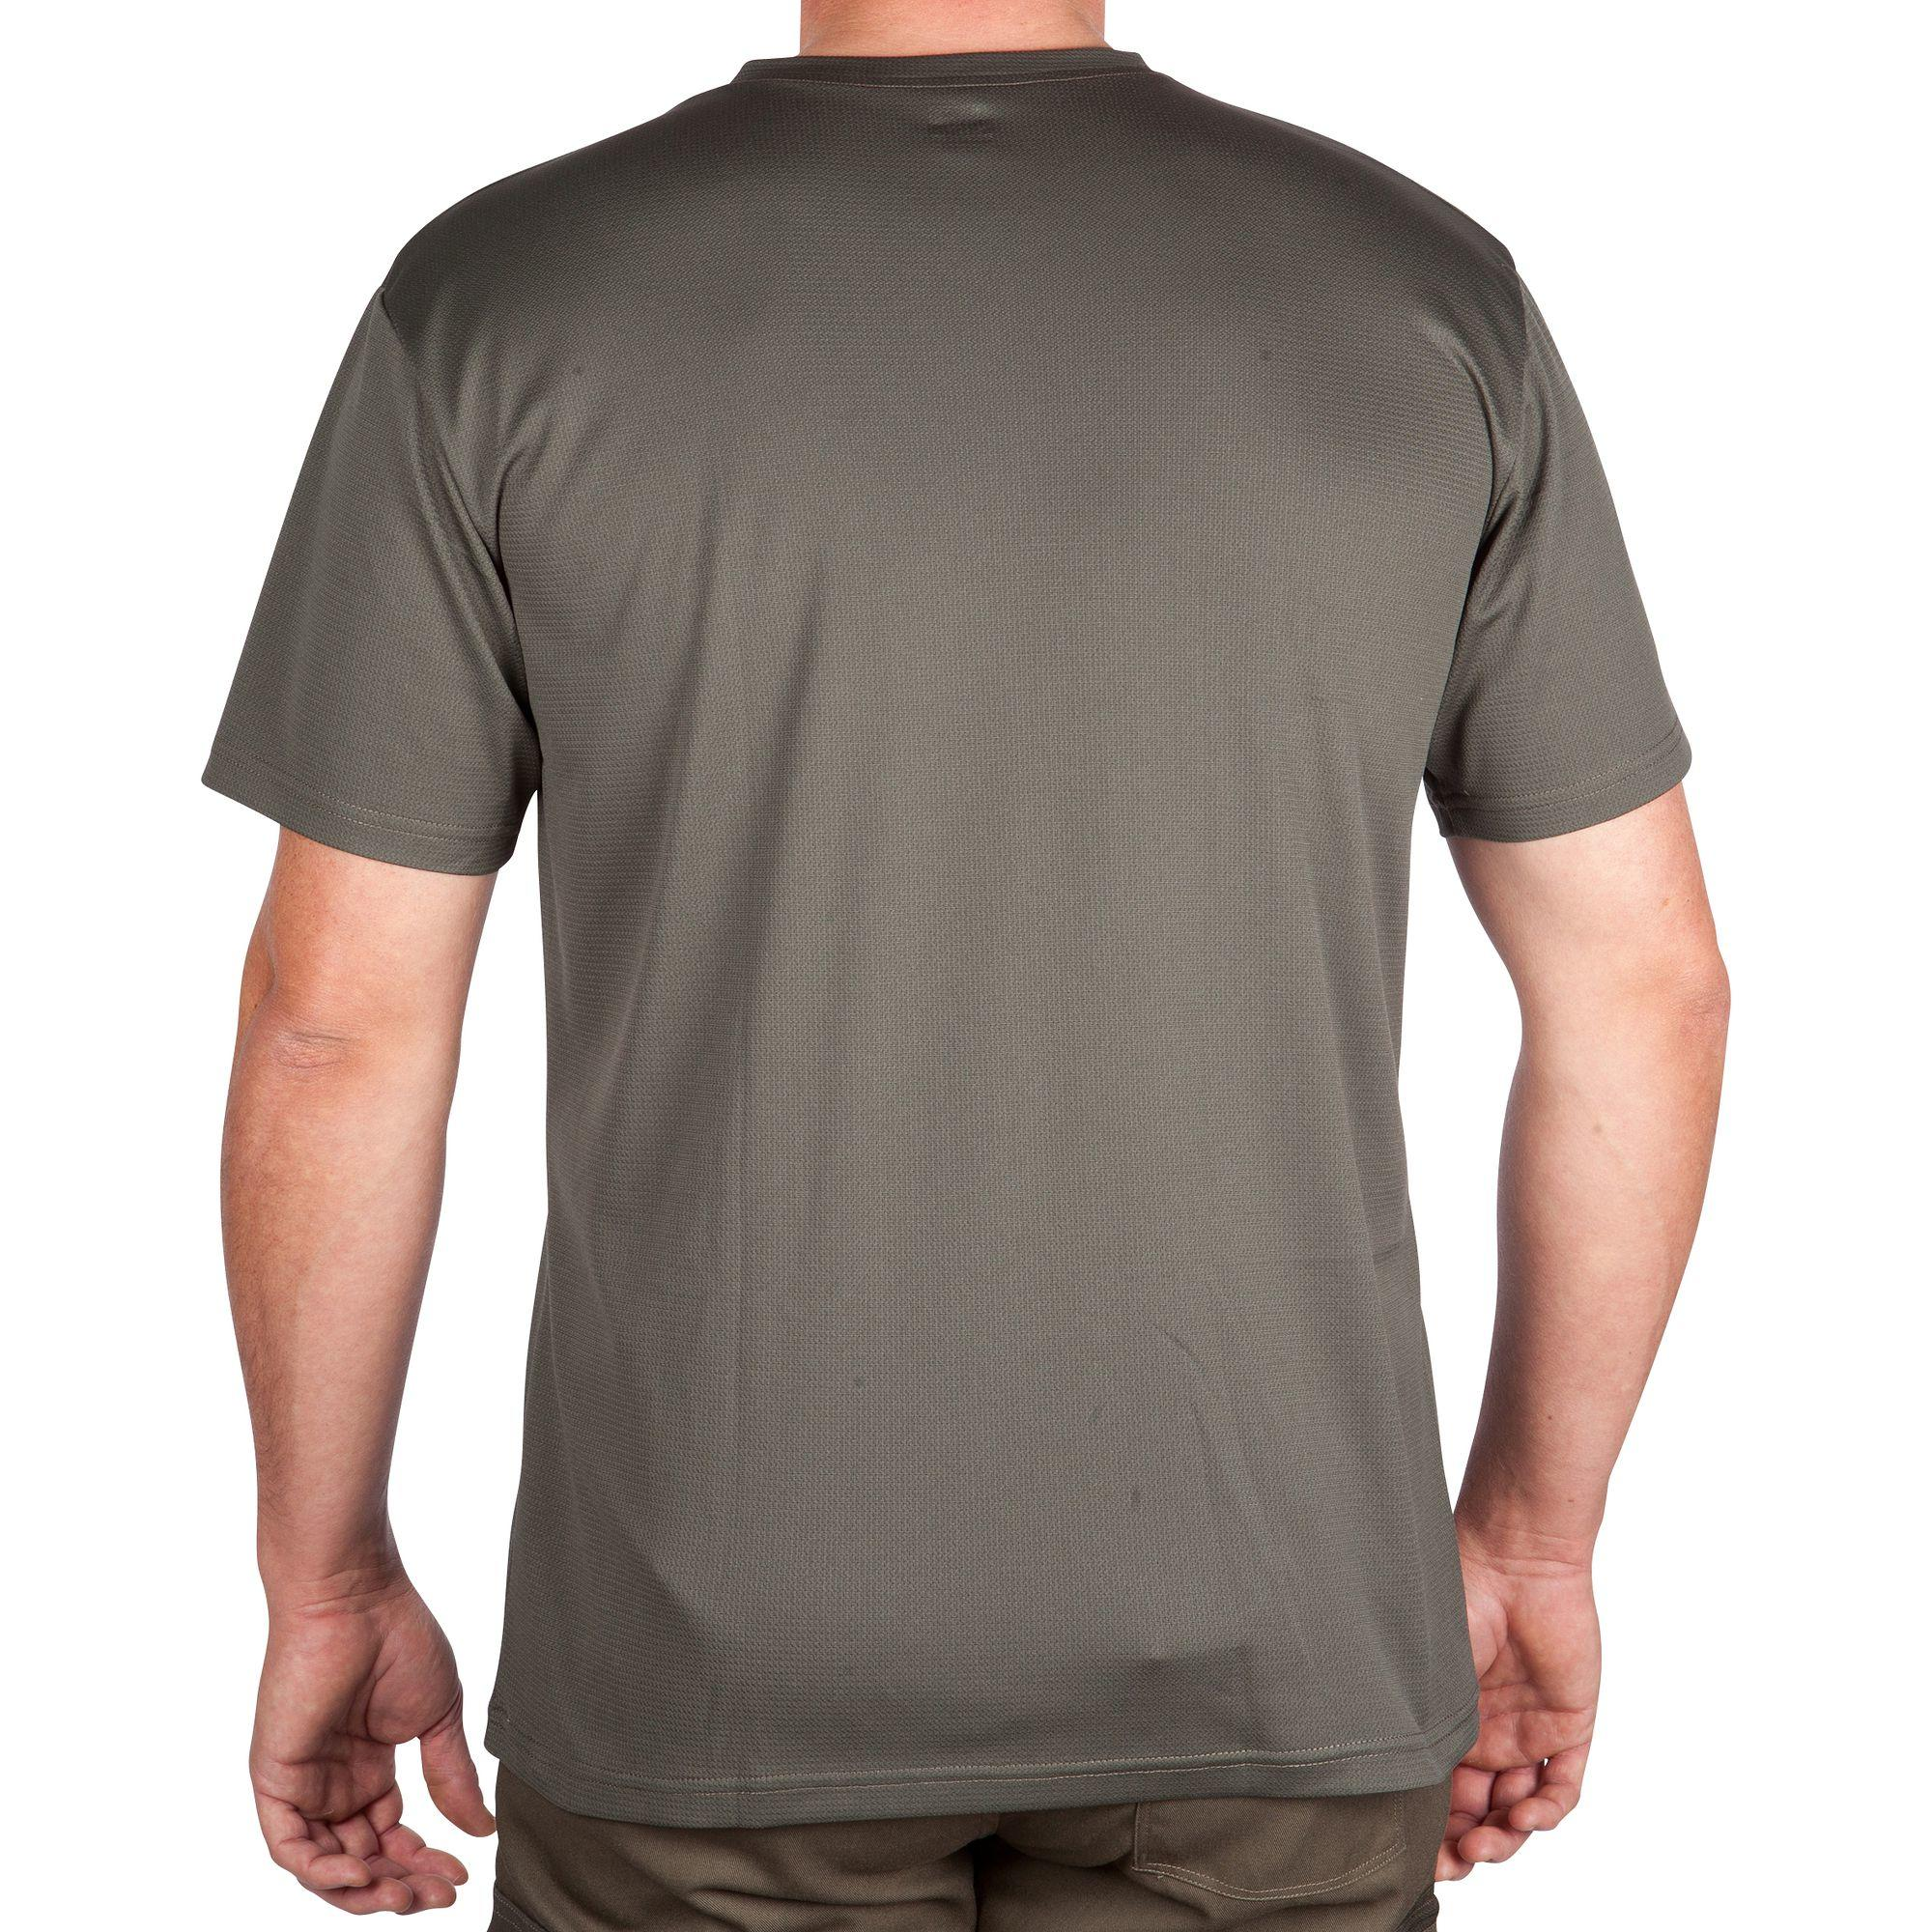 Men's Breathable T-Shirt 100 Green